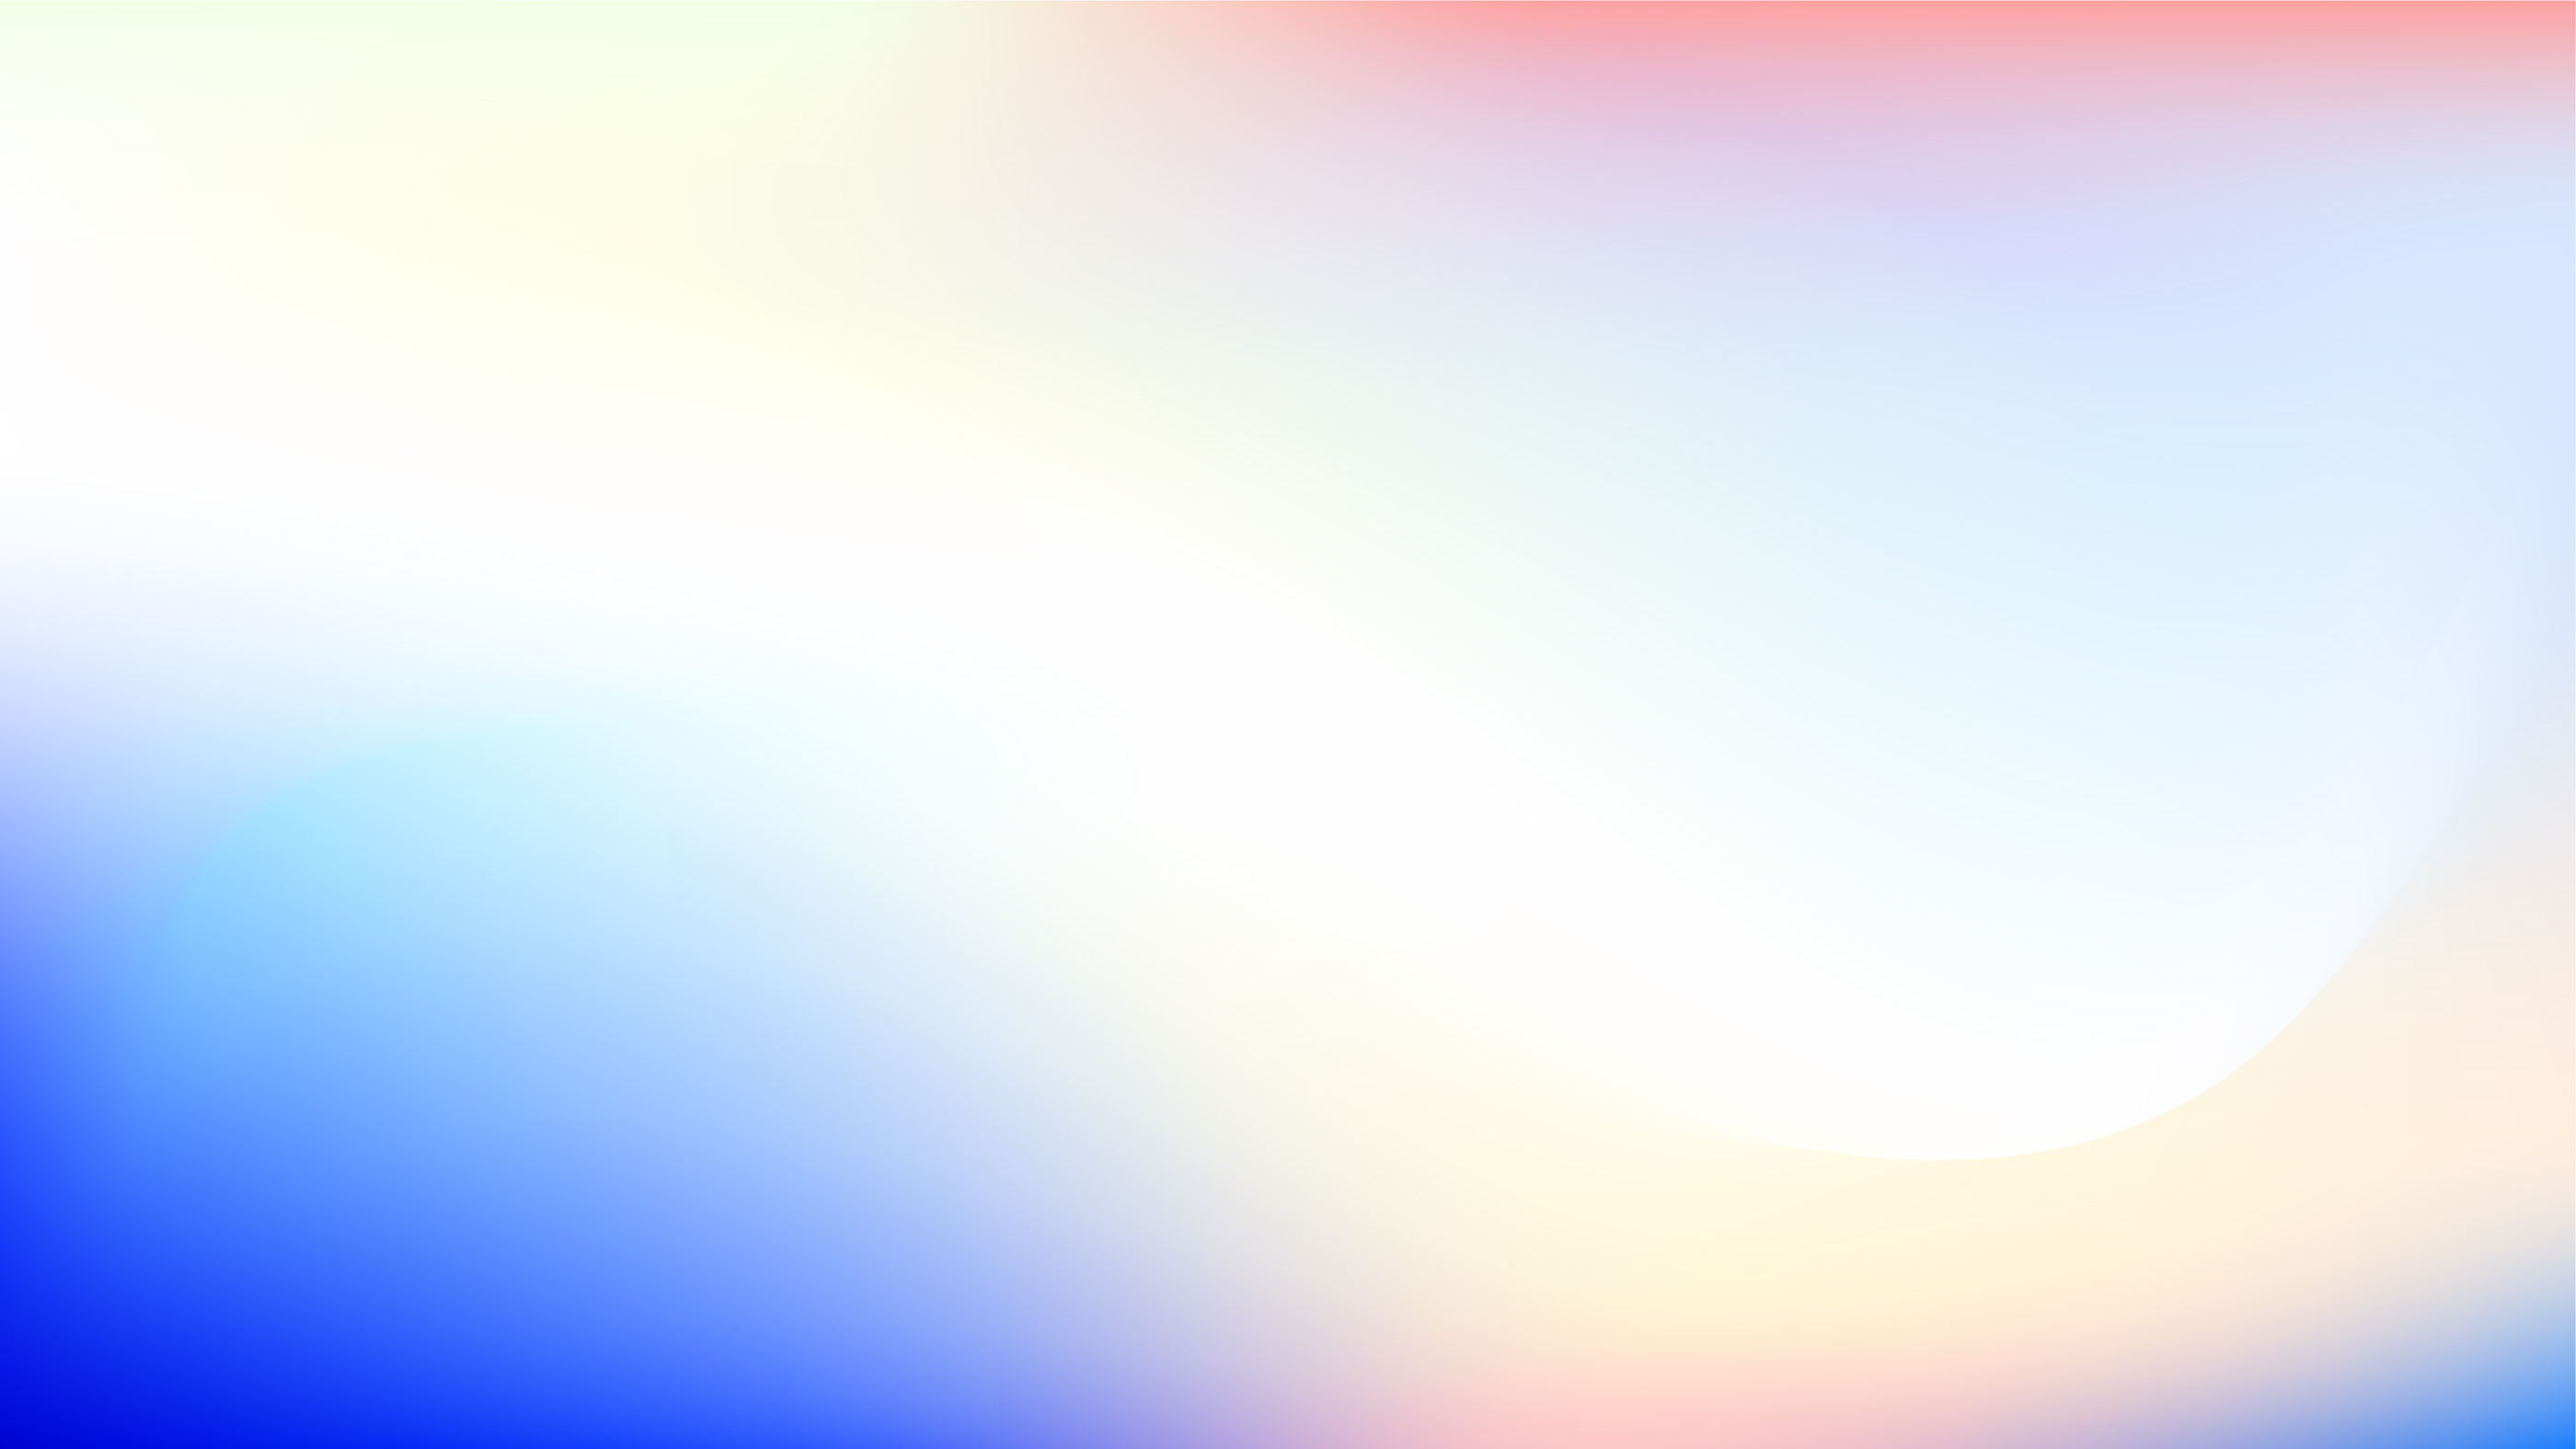 Free Holographic, Multicolor, Unicorn Vector Gradients - 10